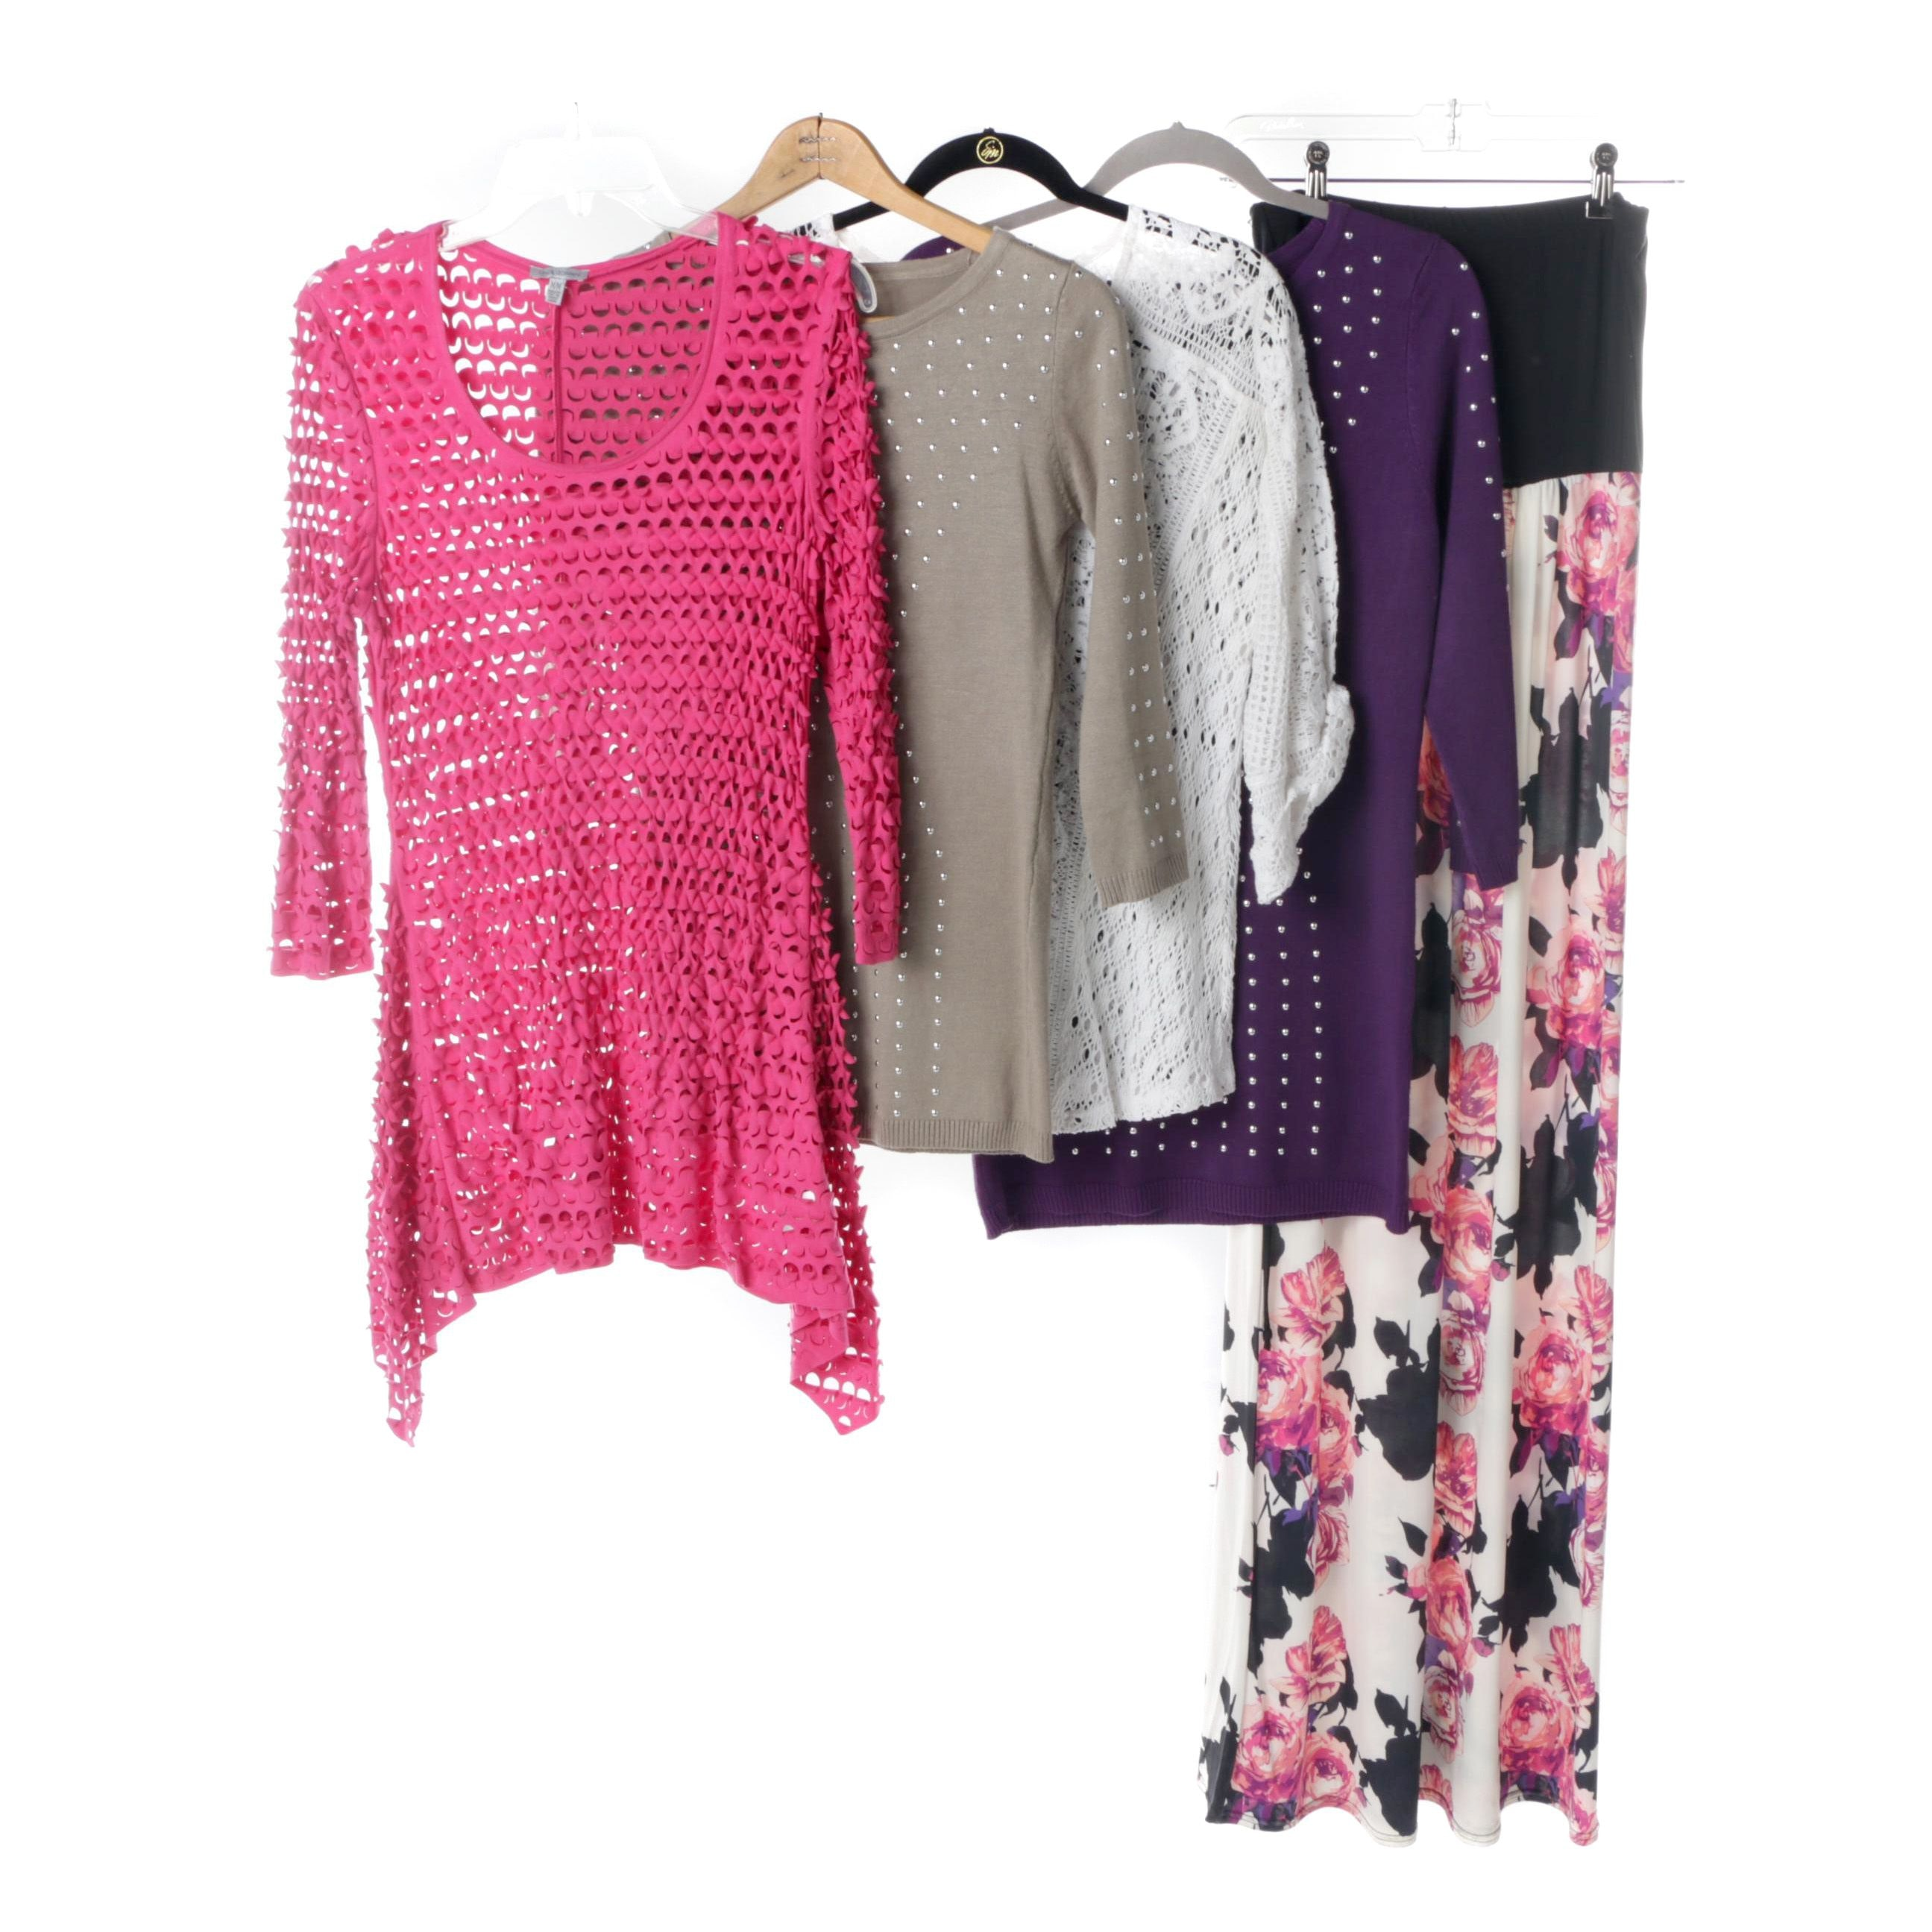 Shirts and Dresses